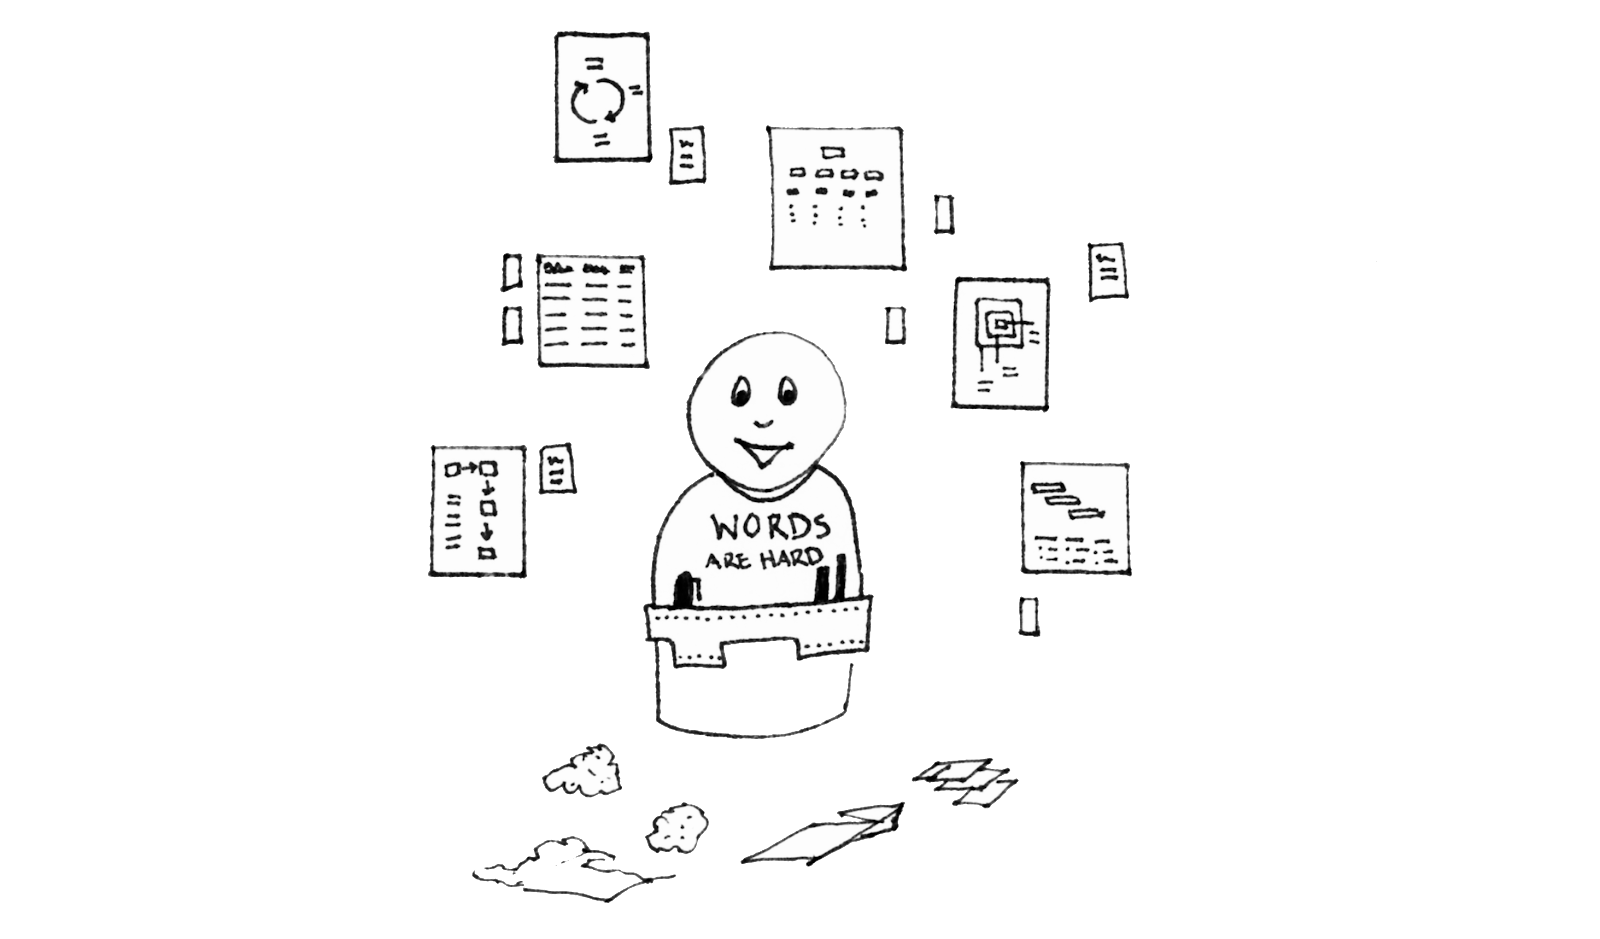 A resolved looking weeble person representing the author, wearing a toolbelt of sharpies and pens and a t-shirt that says Words Are Hard standing against a wall of diagrams and deliverables. At their feet, the refuse of ideas that didnt make the cut